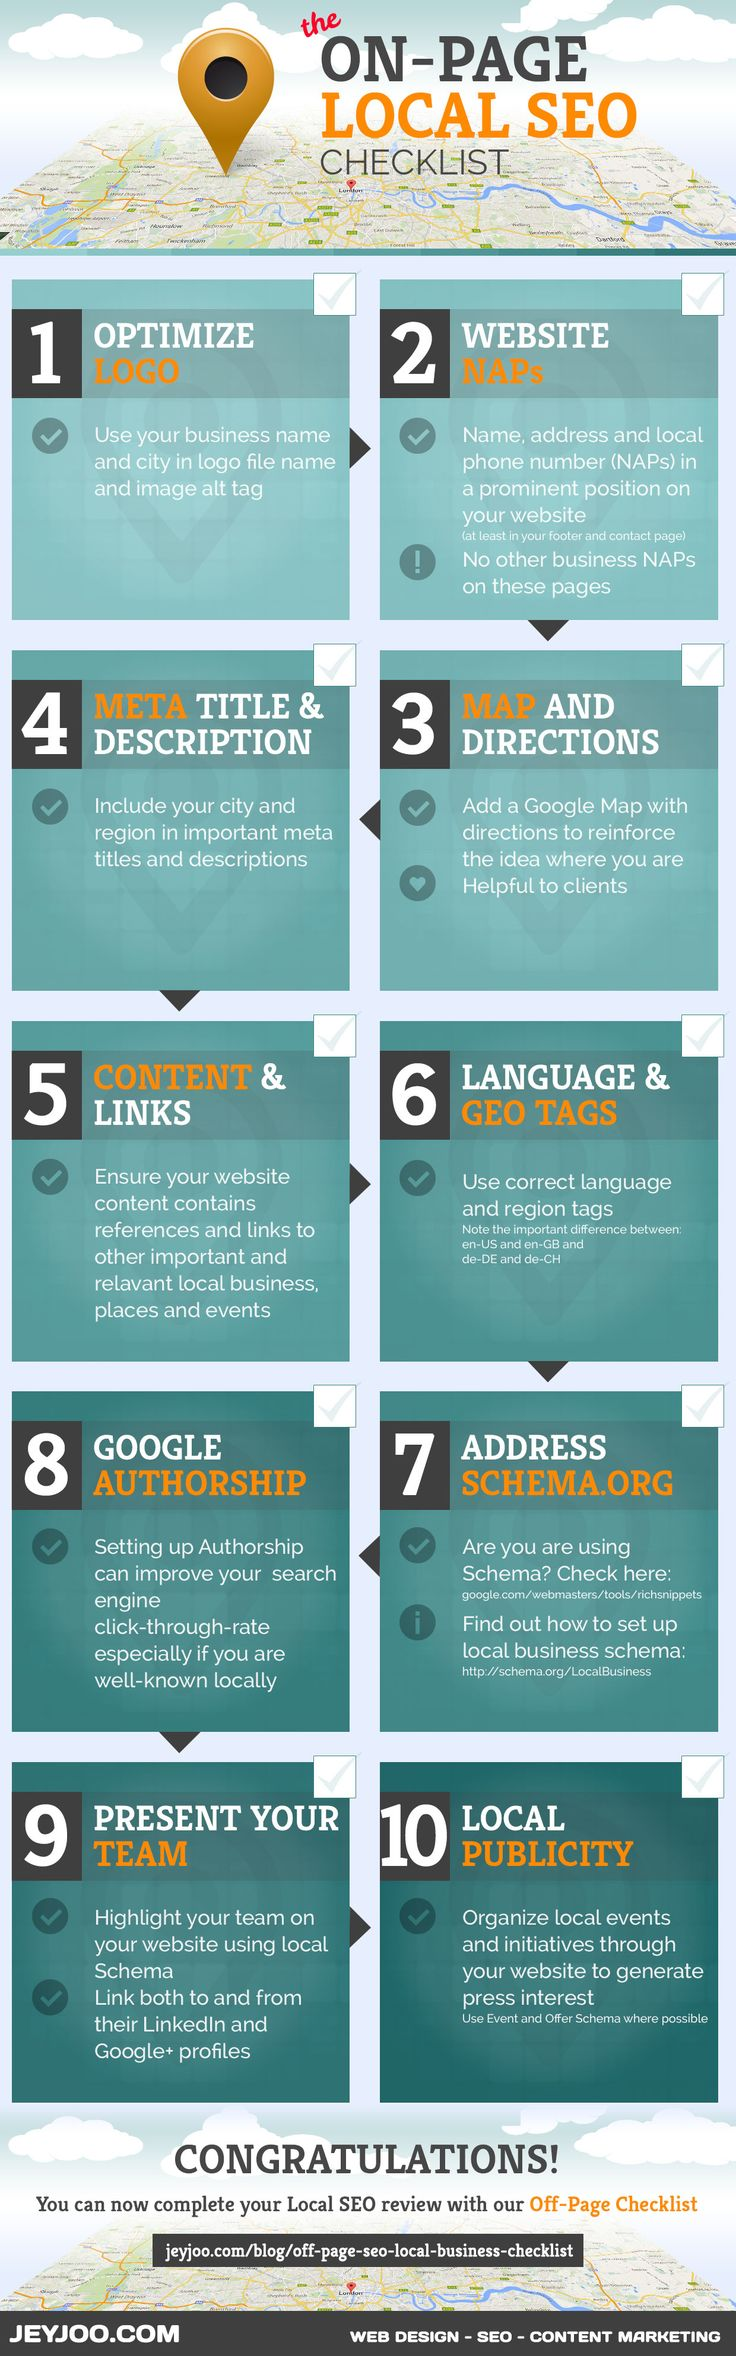 On-Page Local SEO: 10 Tips To Improve Your Local SEO [Infographic] #BespokeDigitalMedia